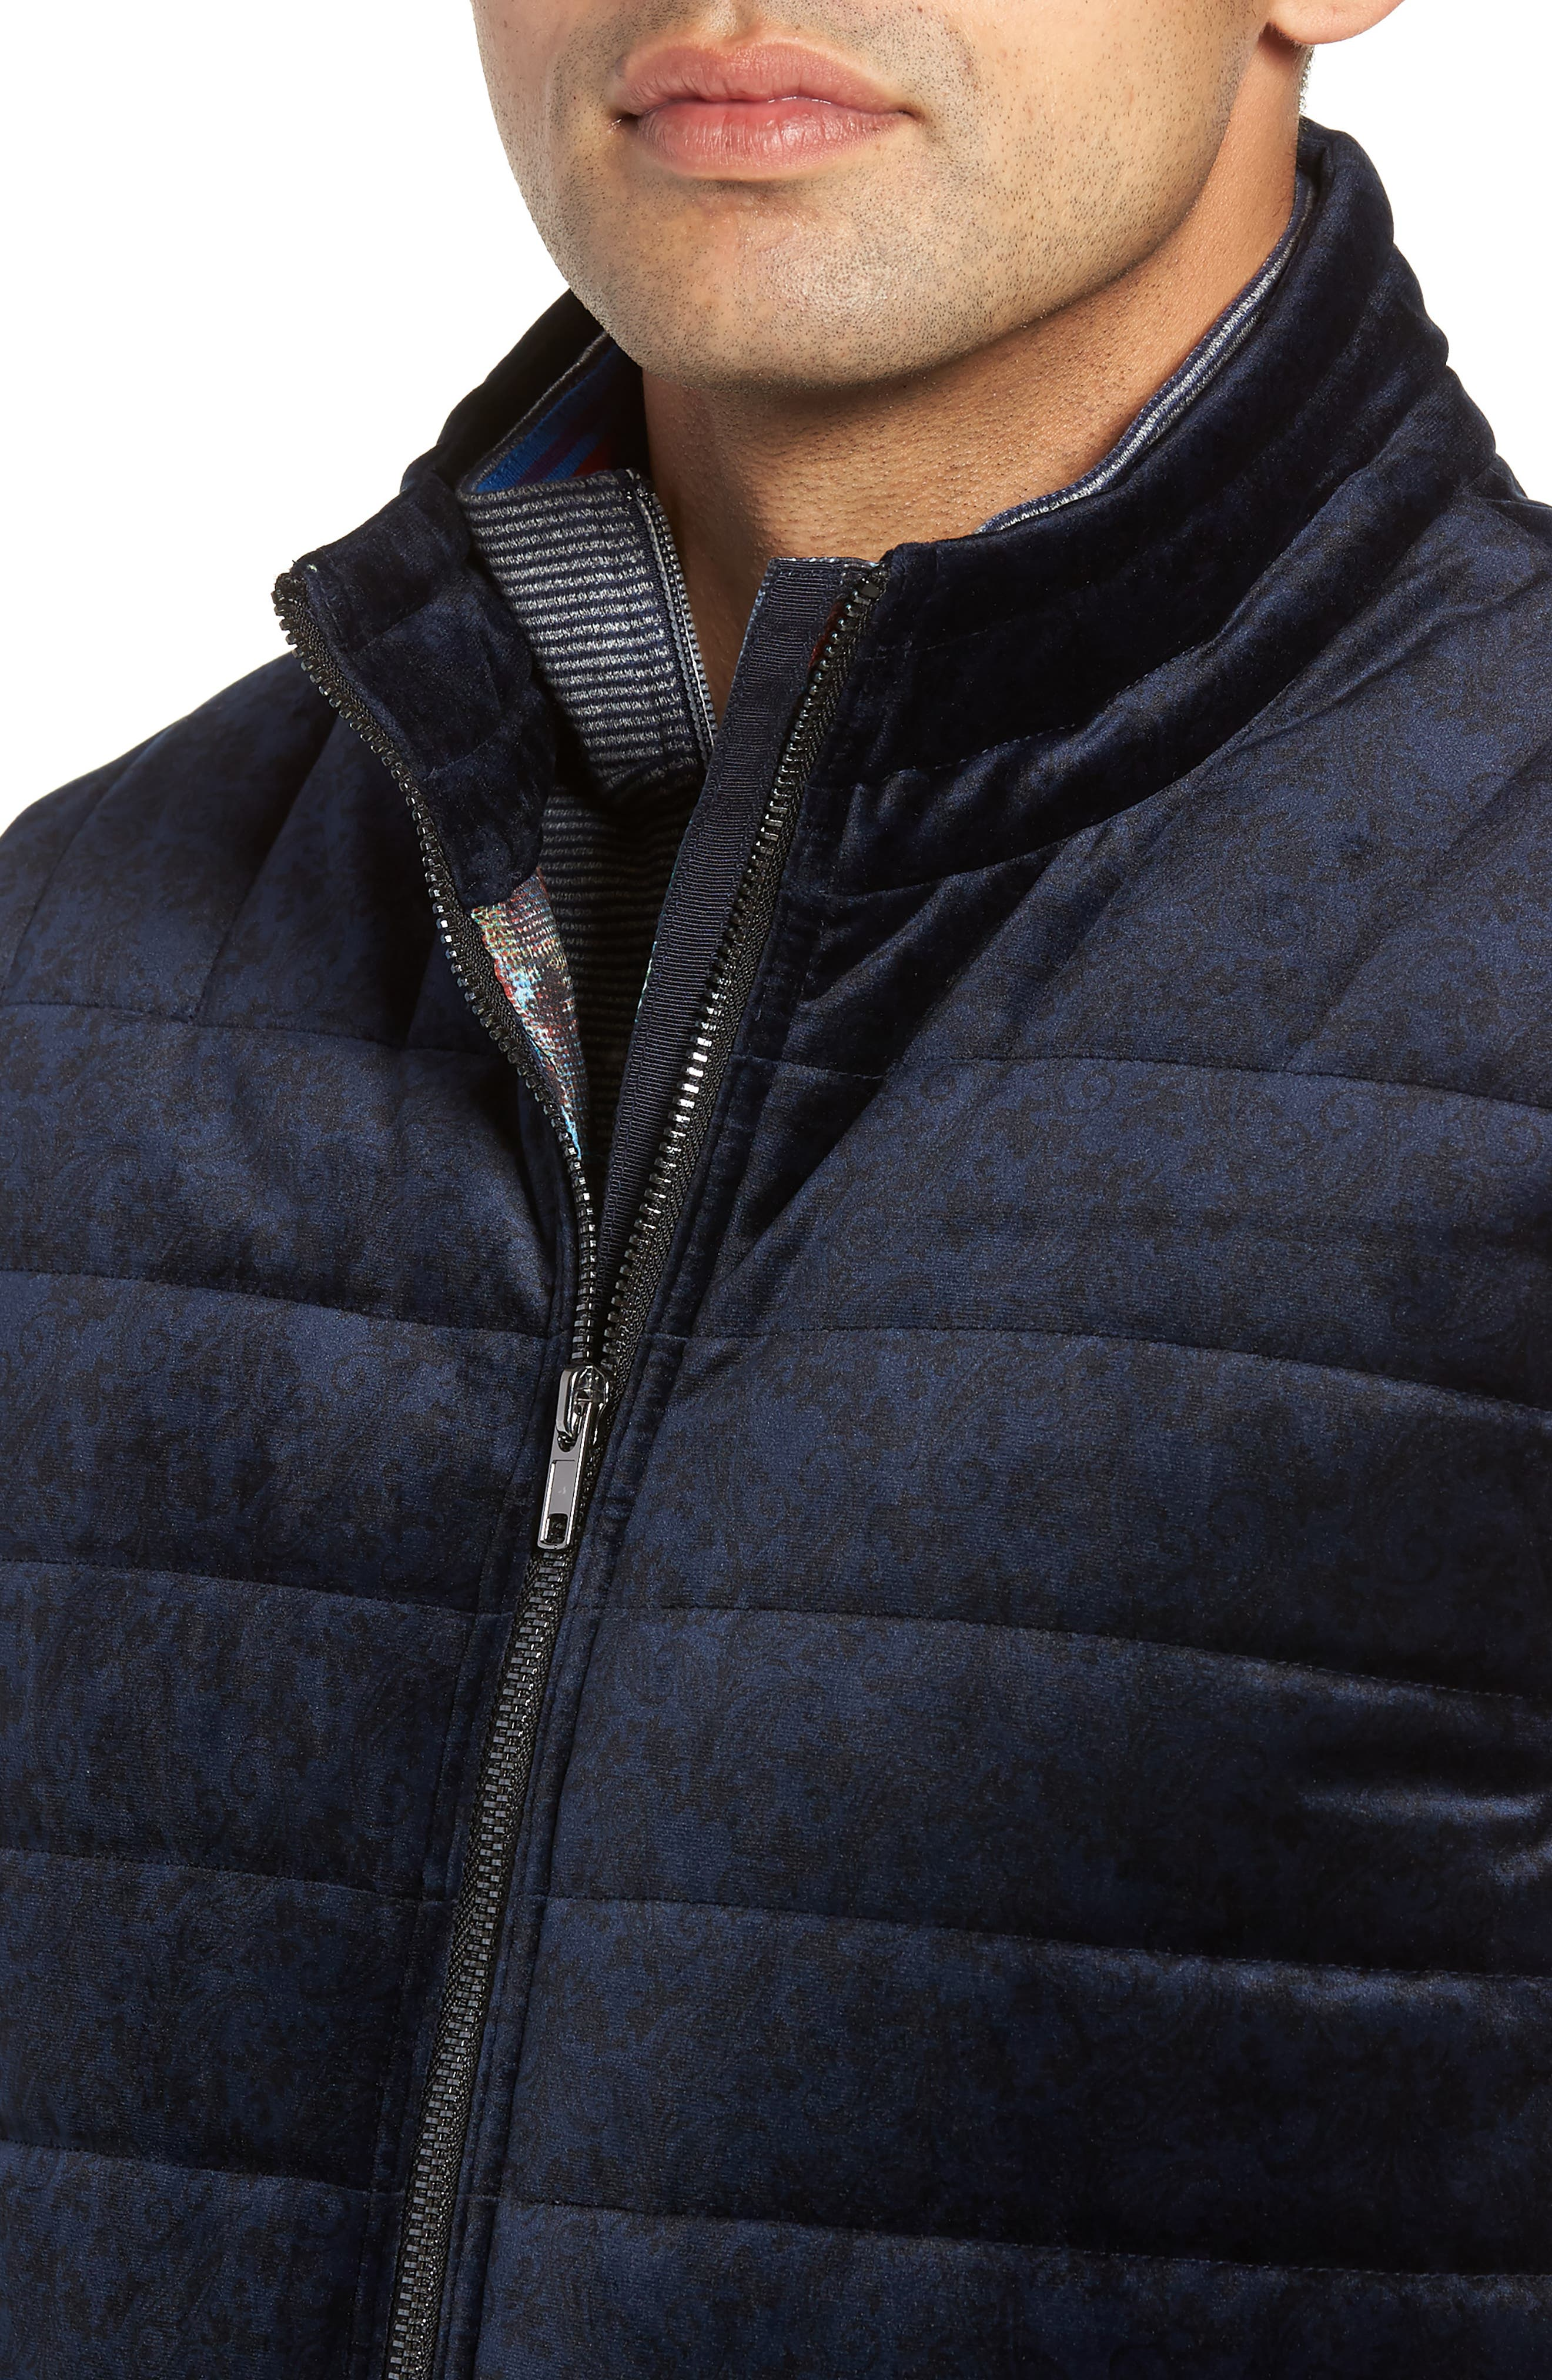 Guiffery Classic Fit Quilted Vest,                             Alternate thumbnail 4, color,                             NAVY